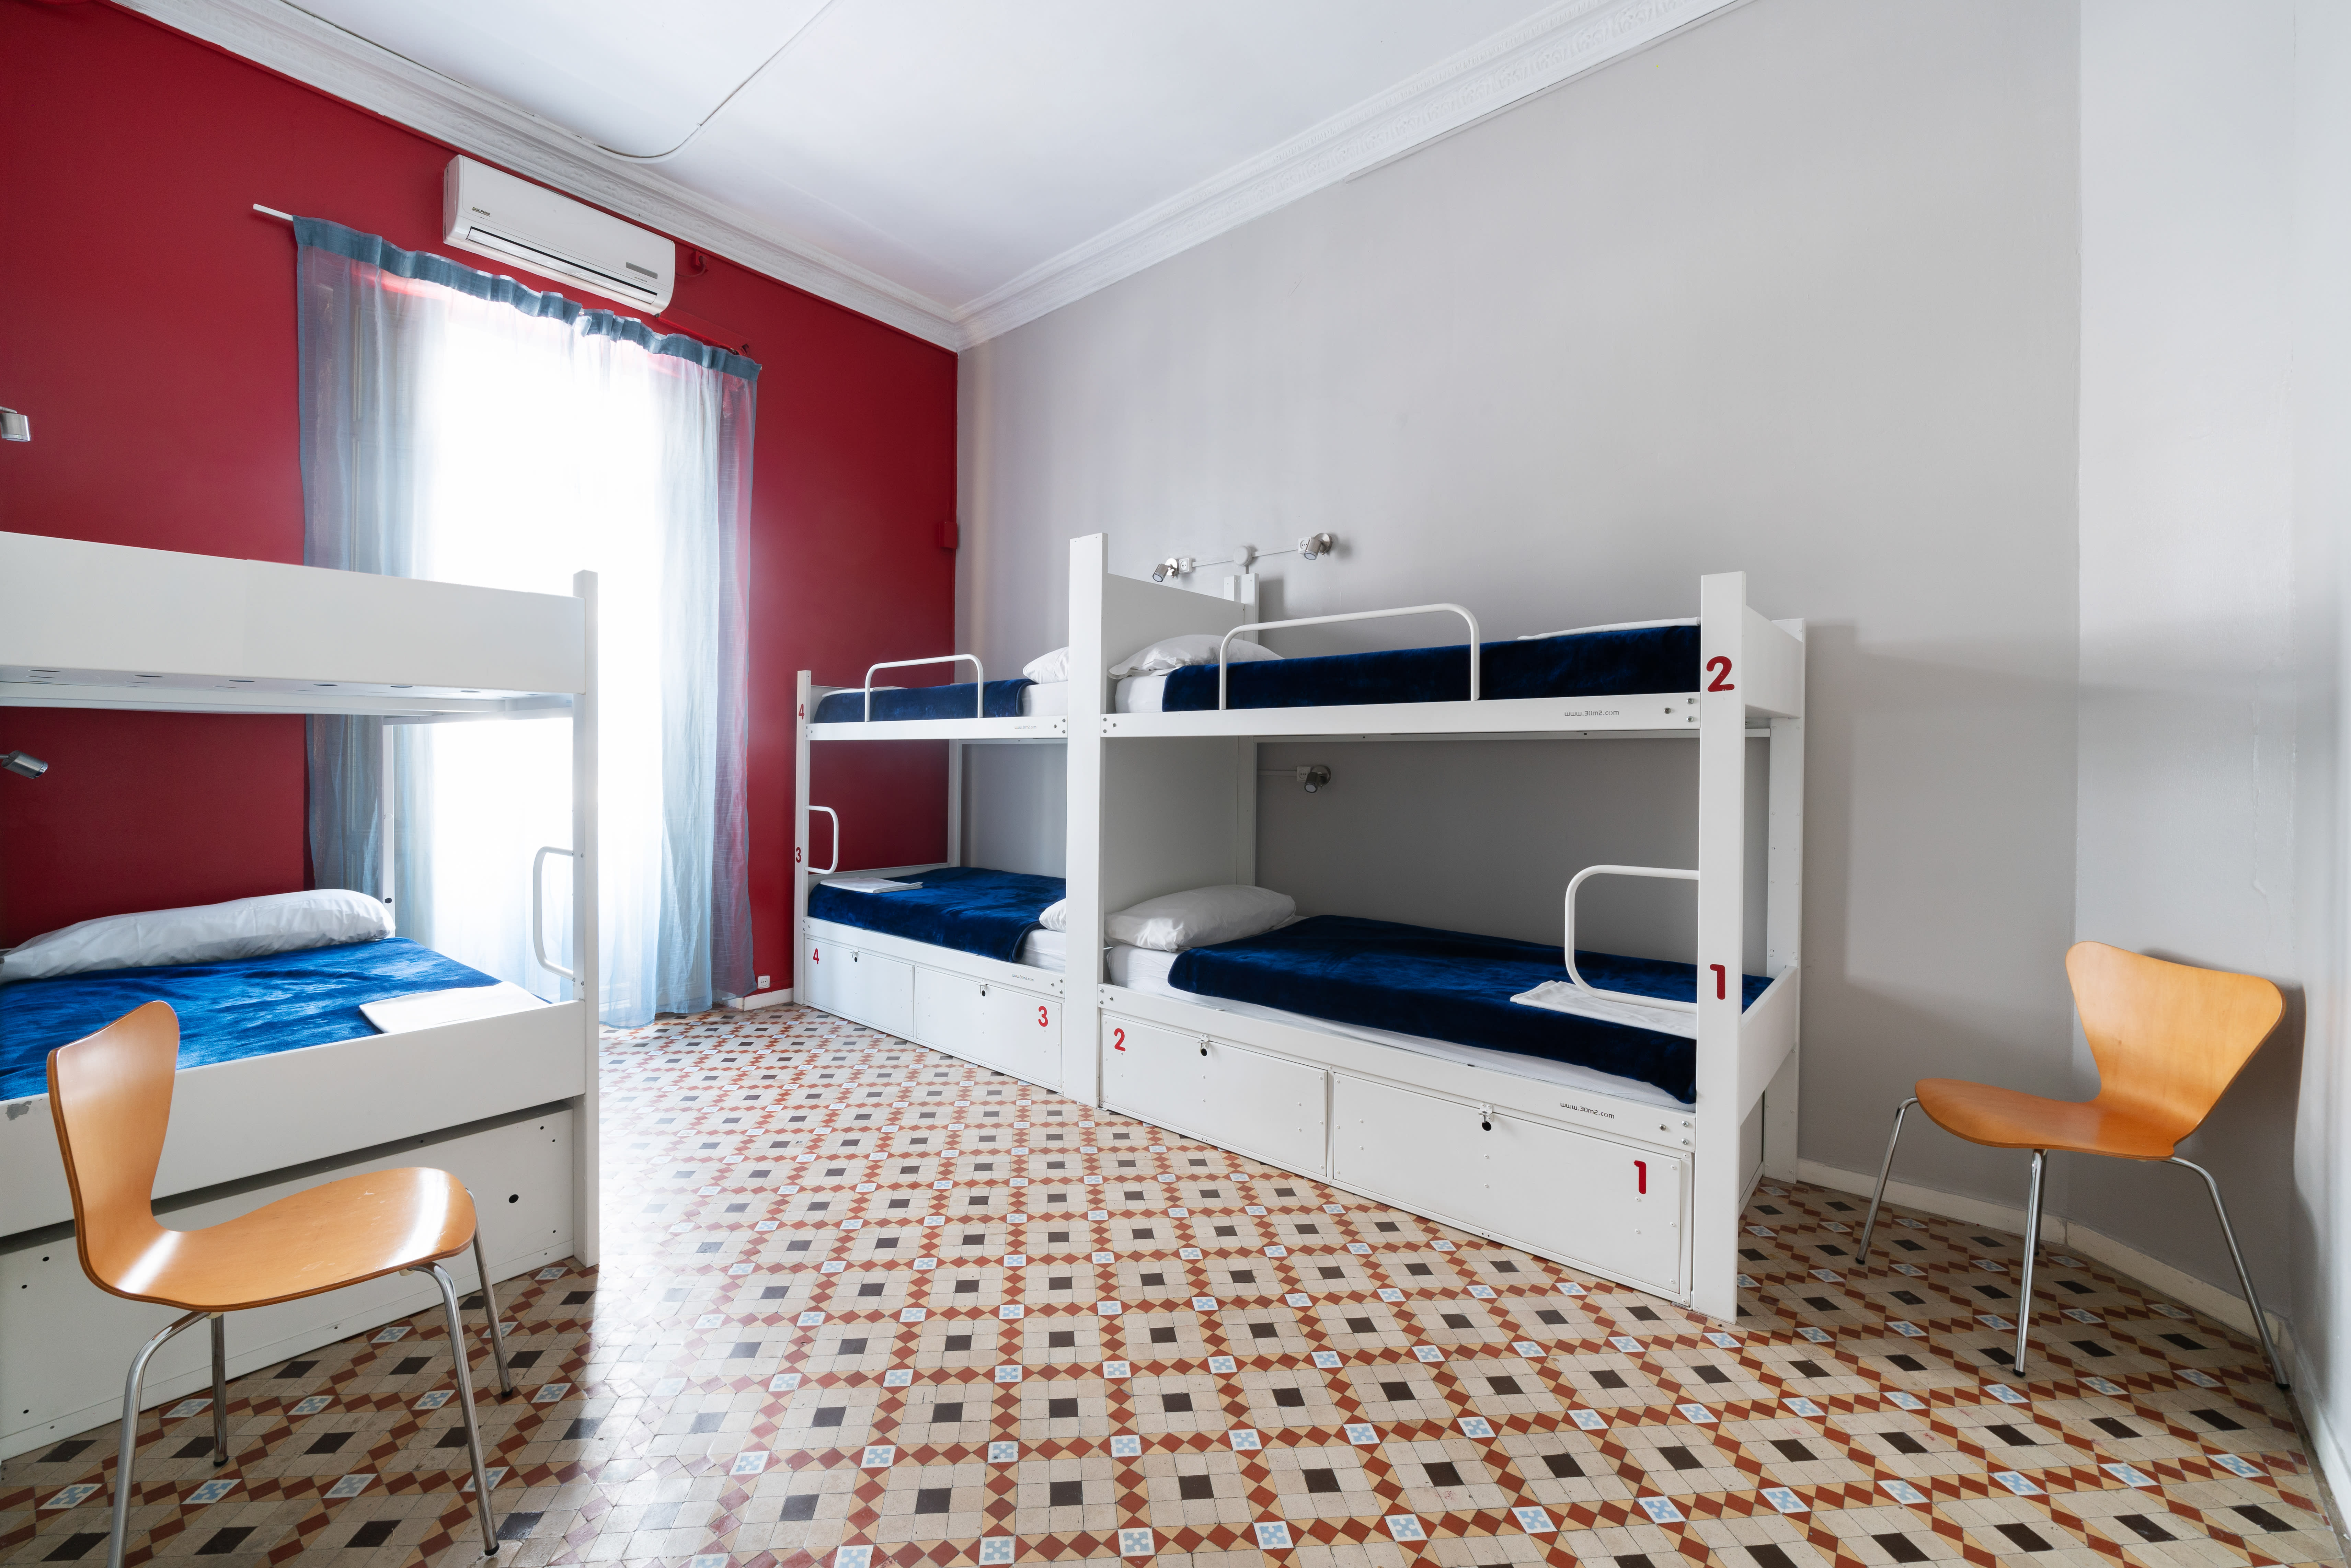 Red Nest Hostel Valencia